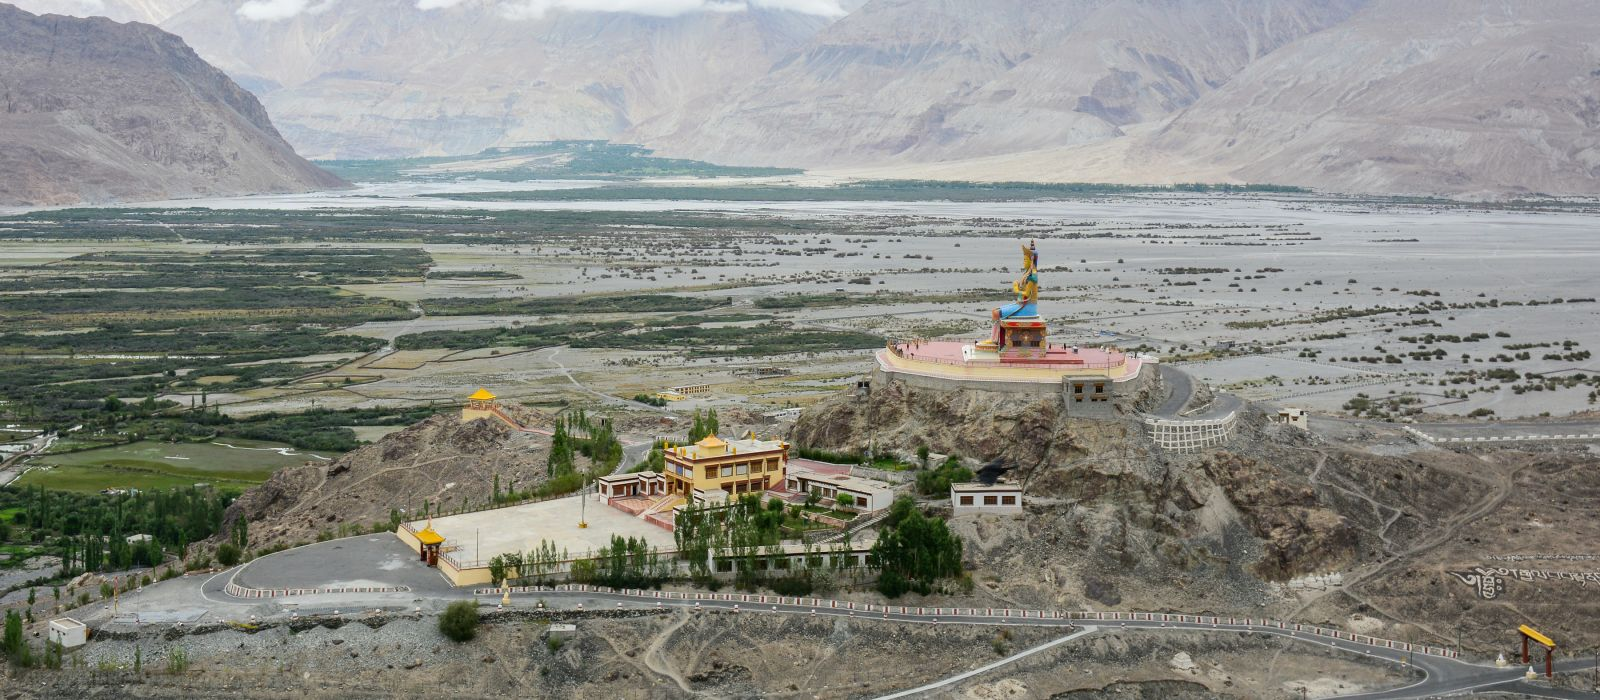 Maitreya Buddha statue, Himalaya mountains, Nubra Valley, Ladakh, India